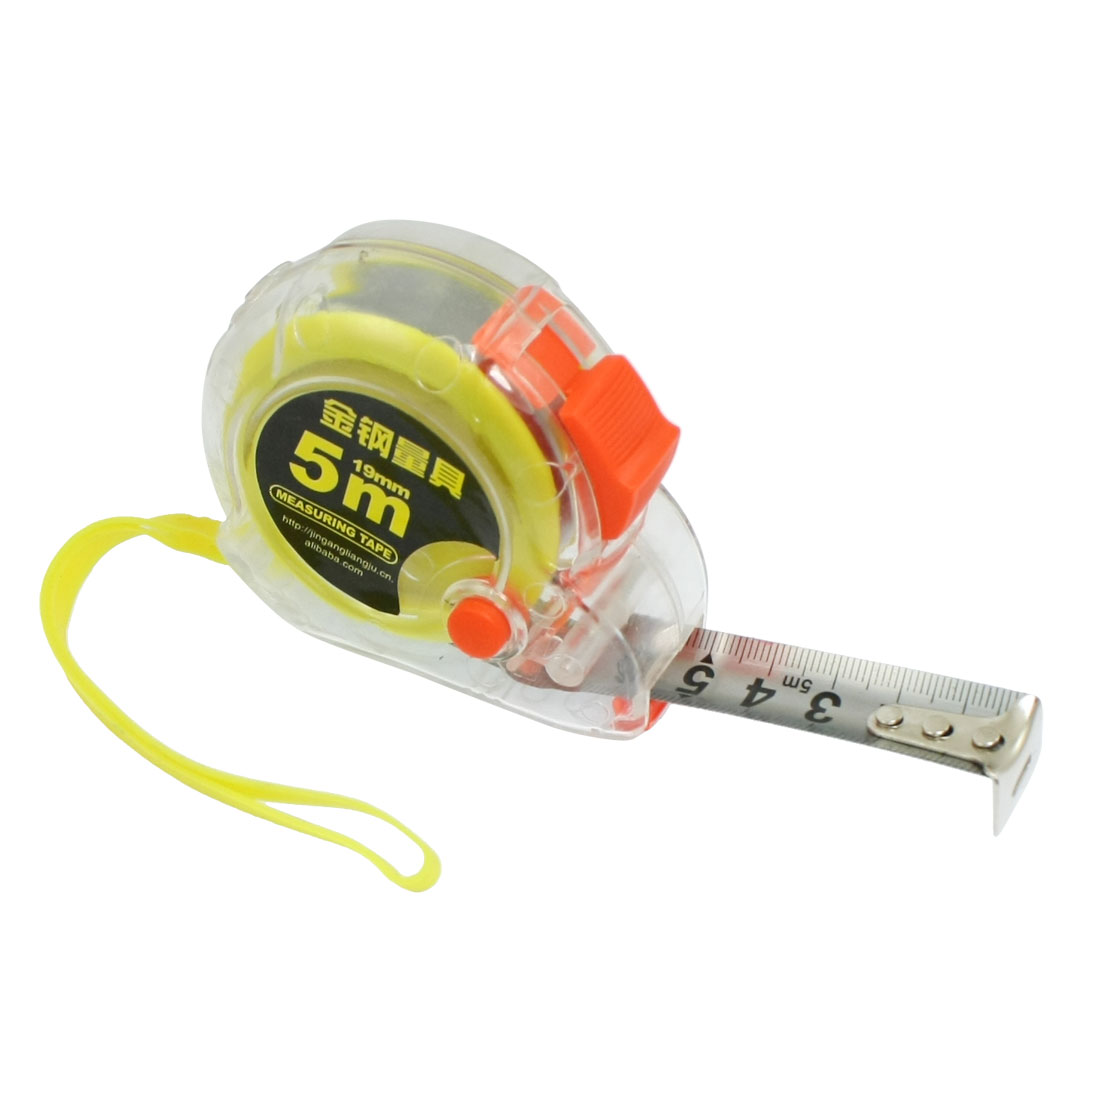 Plastic Housing Self Retract Measure Tape Rule 5M Yellow Orange Clear